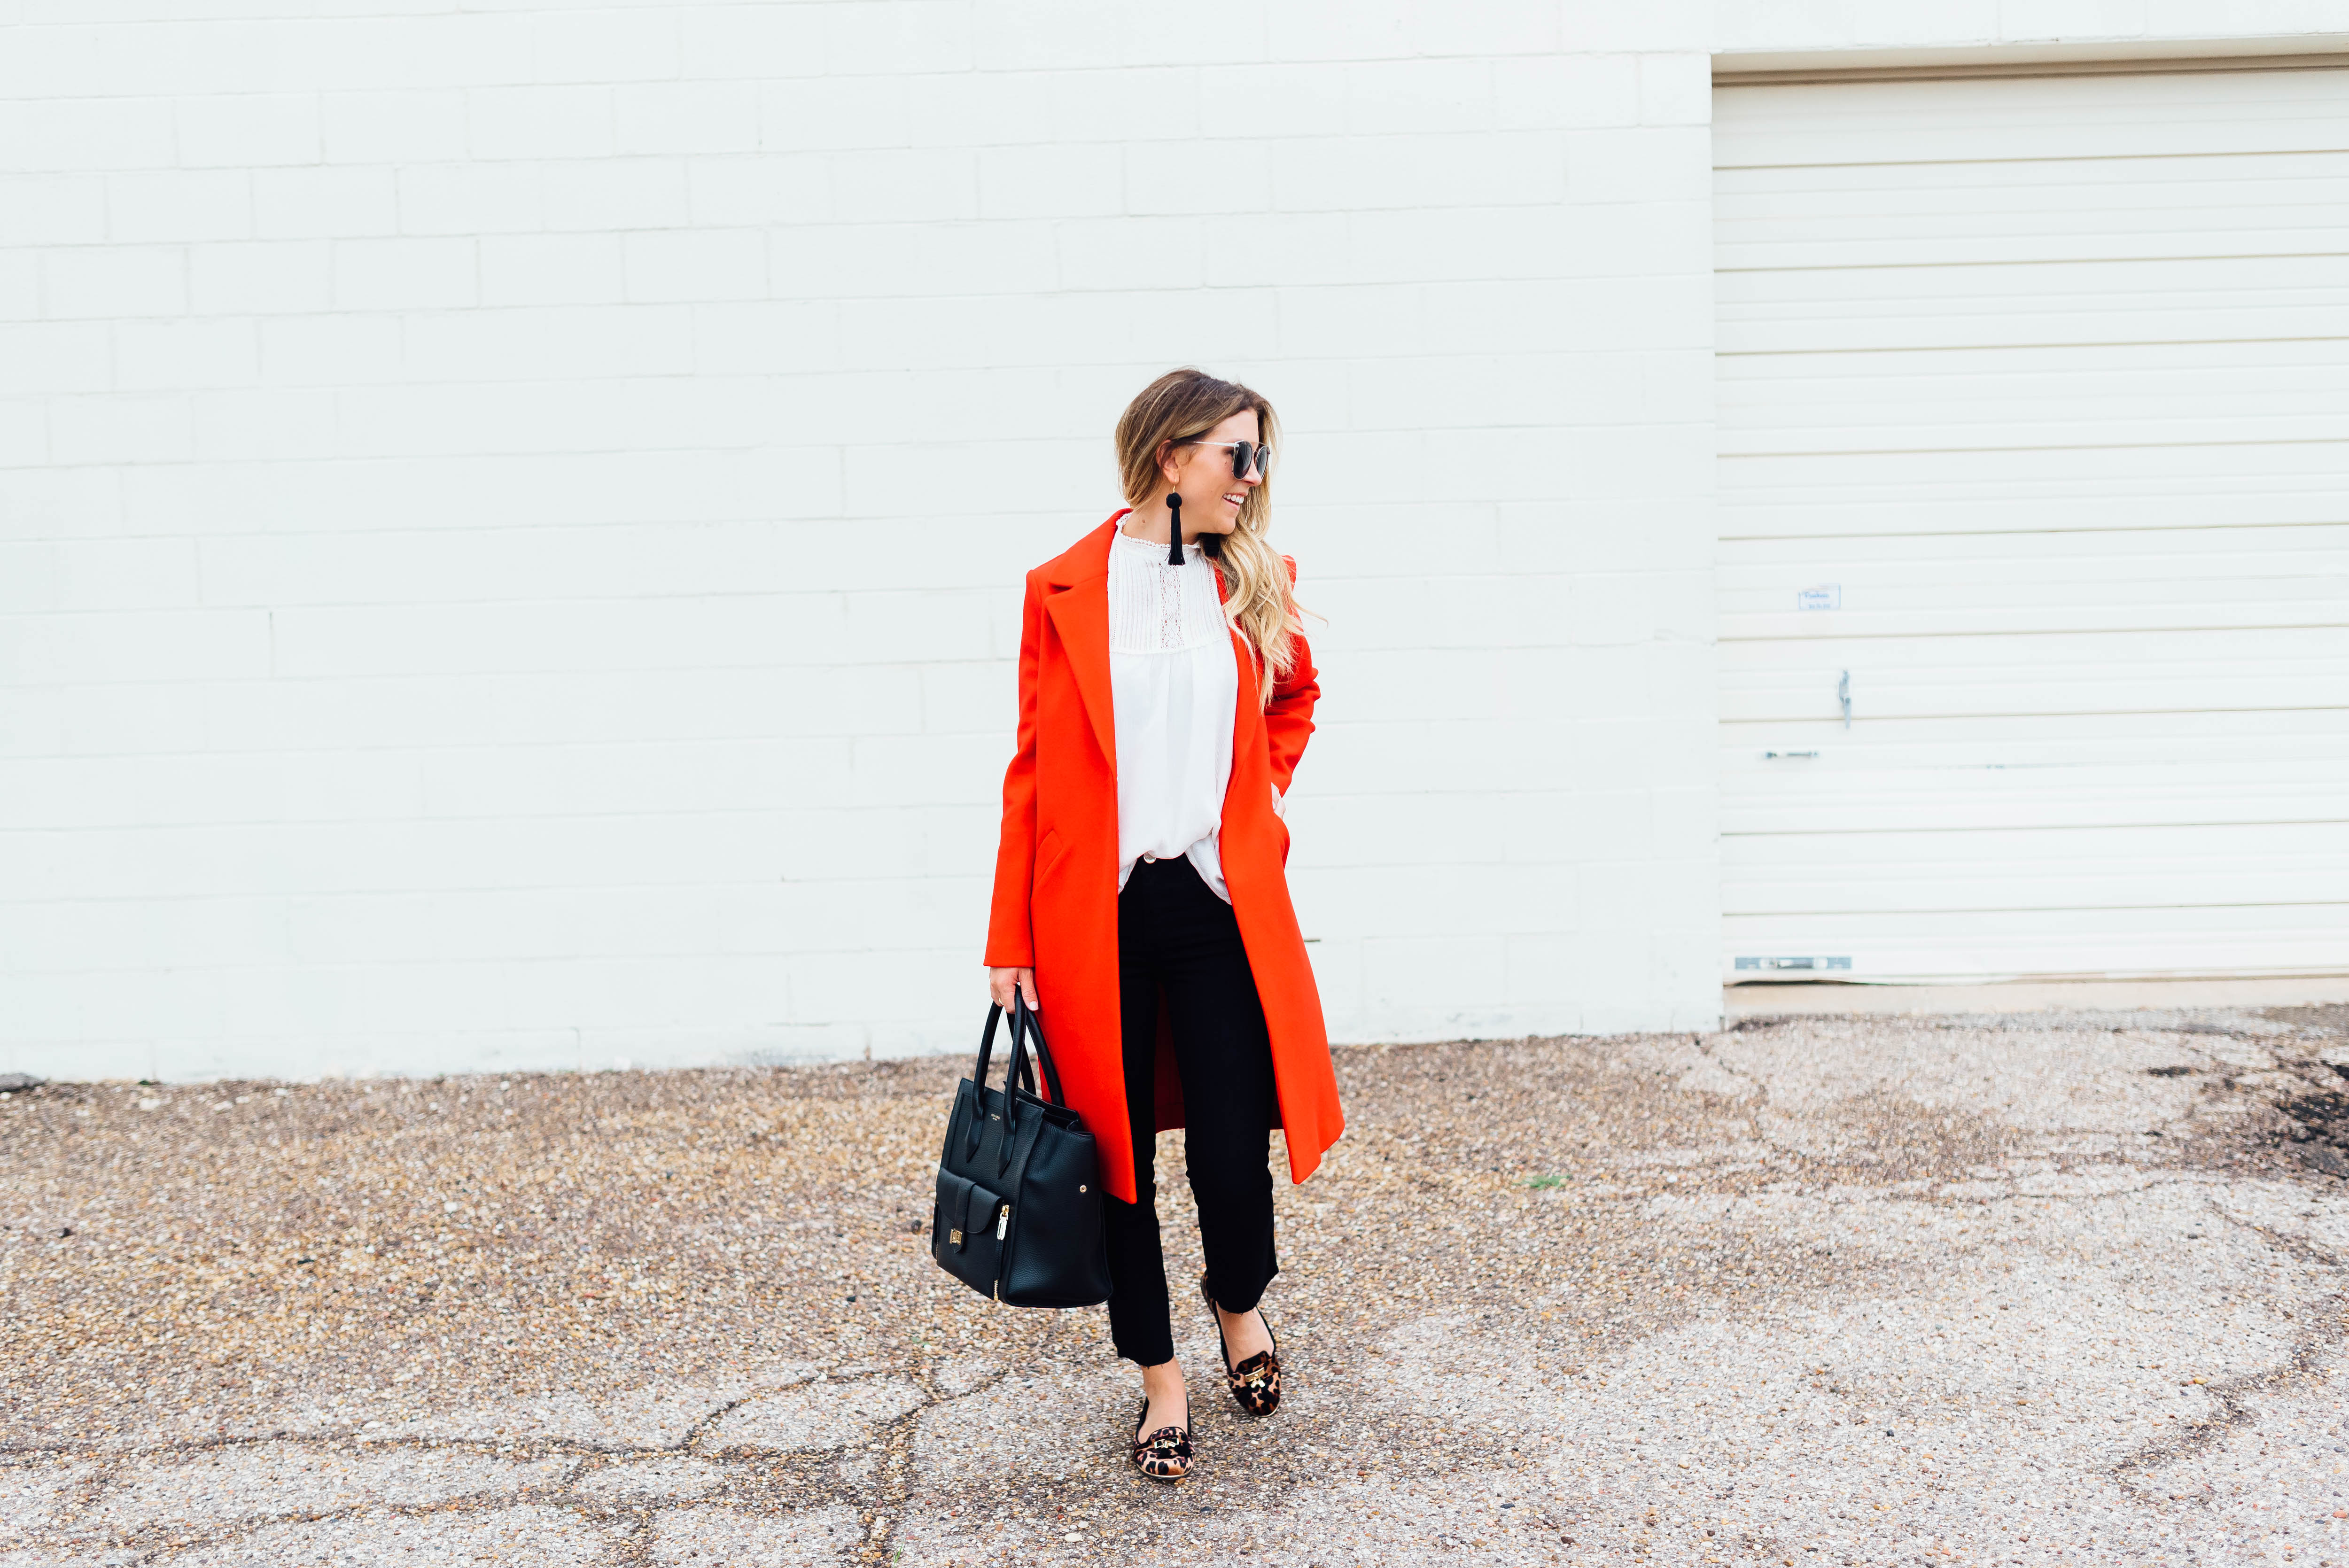 red the hottest color for fall, trends for fall